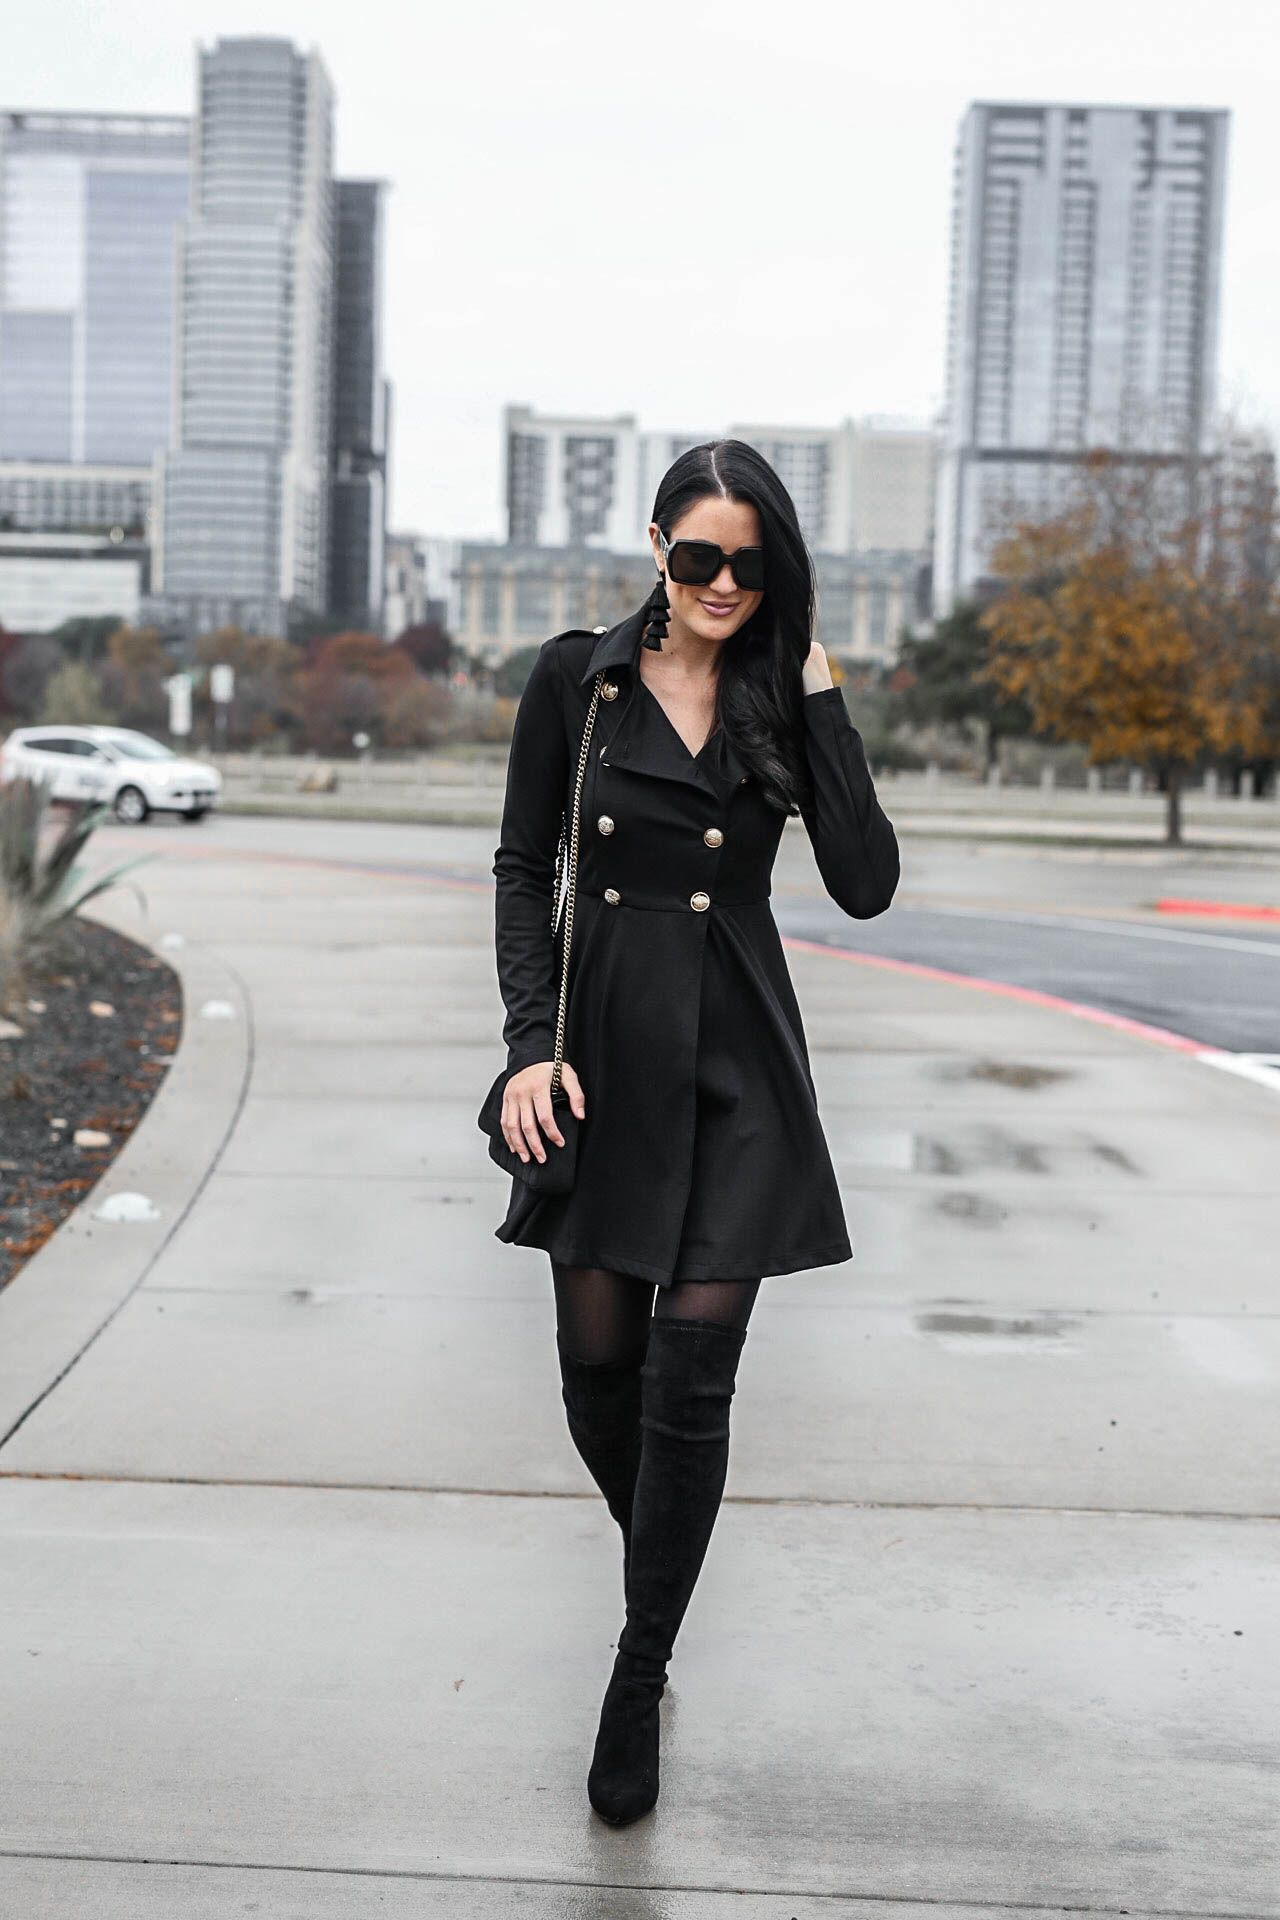 Tips On How To Wear A Black Trench Coat Dress Dressed To Kill Trench Coat Outfit Fall Trench Coats Women Trench Coat Dress [ 1920 x 1280 Pixel ]